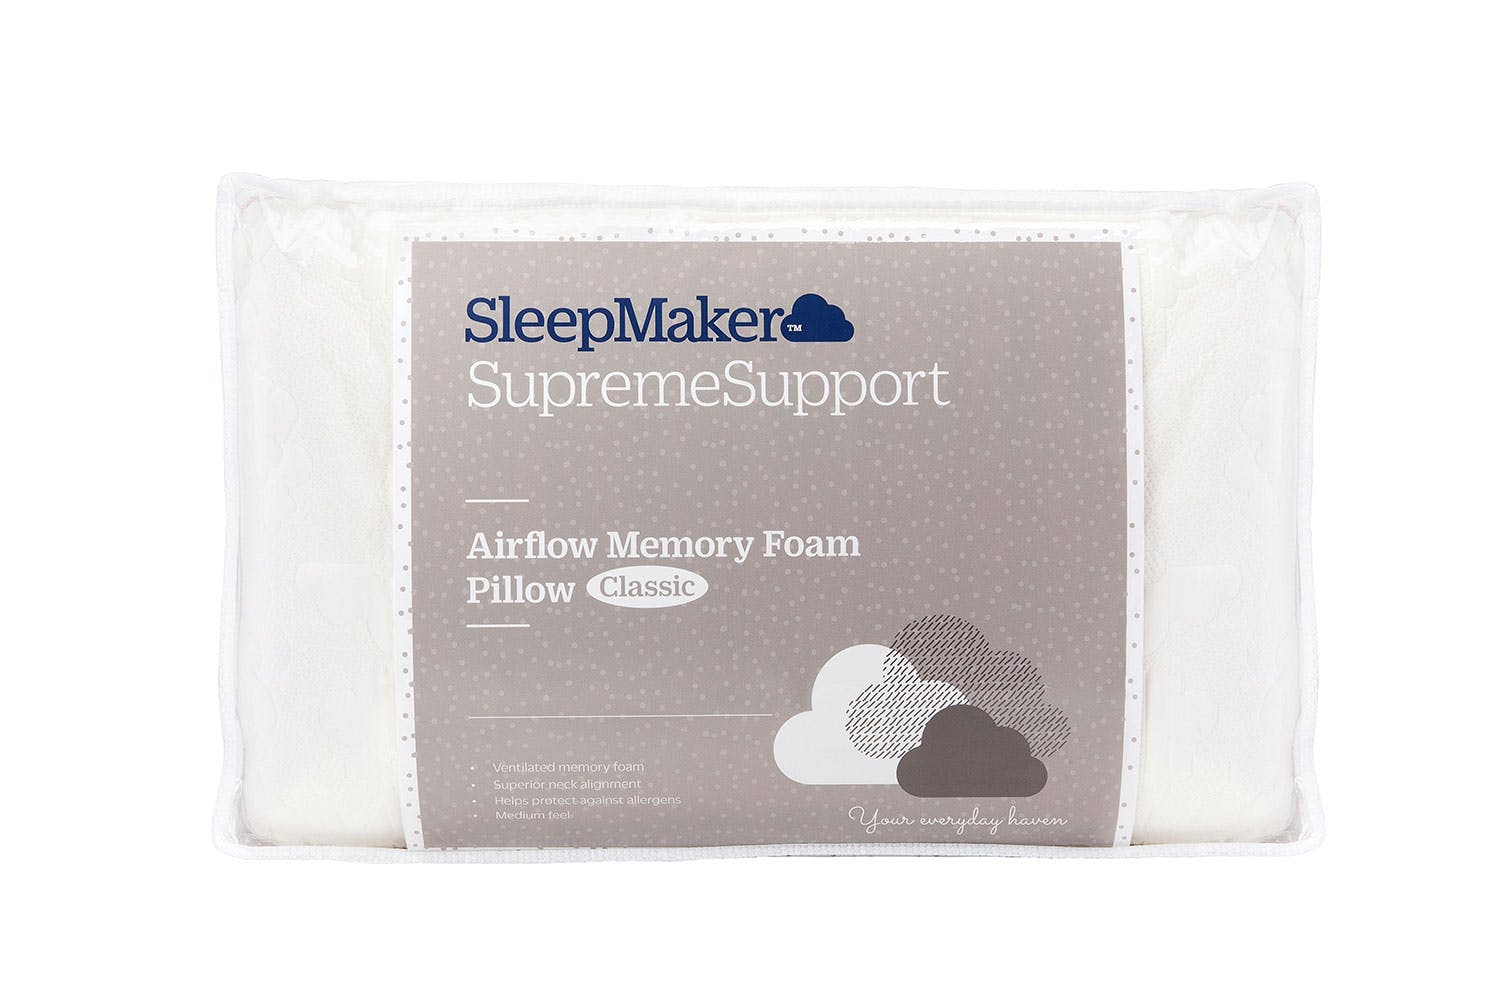 Spa Supreme Traditional Memory Foam Pillow : Supreme Support Airflow Memory Foam Pillow - Classic Harvey Norman New Zealand